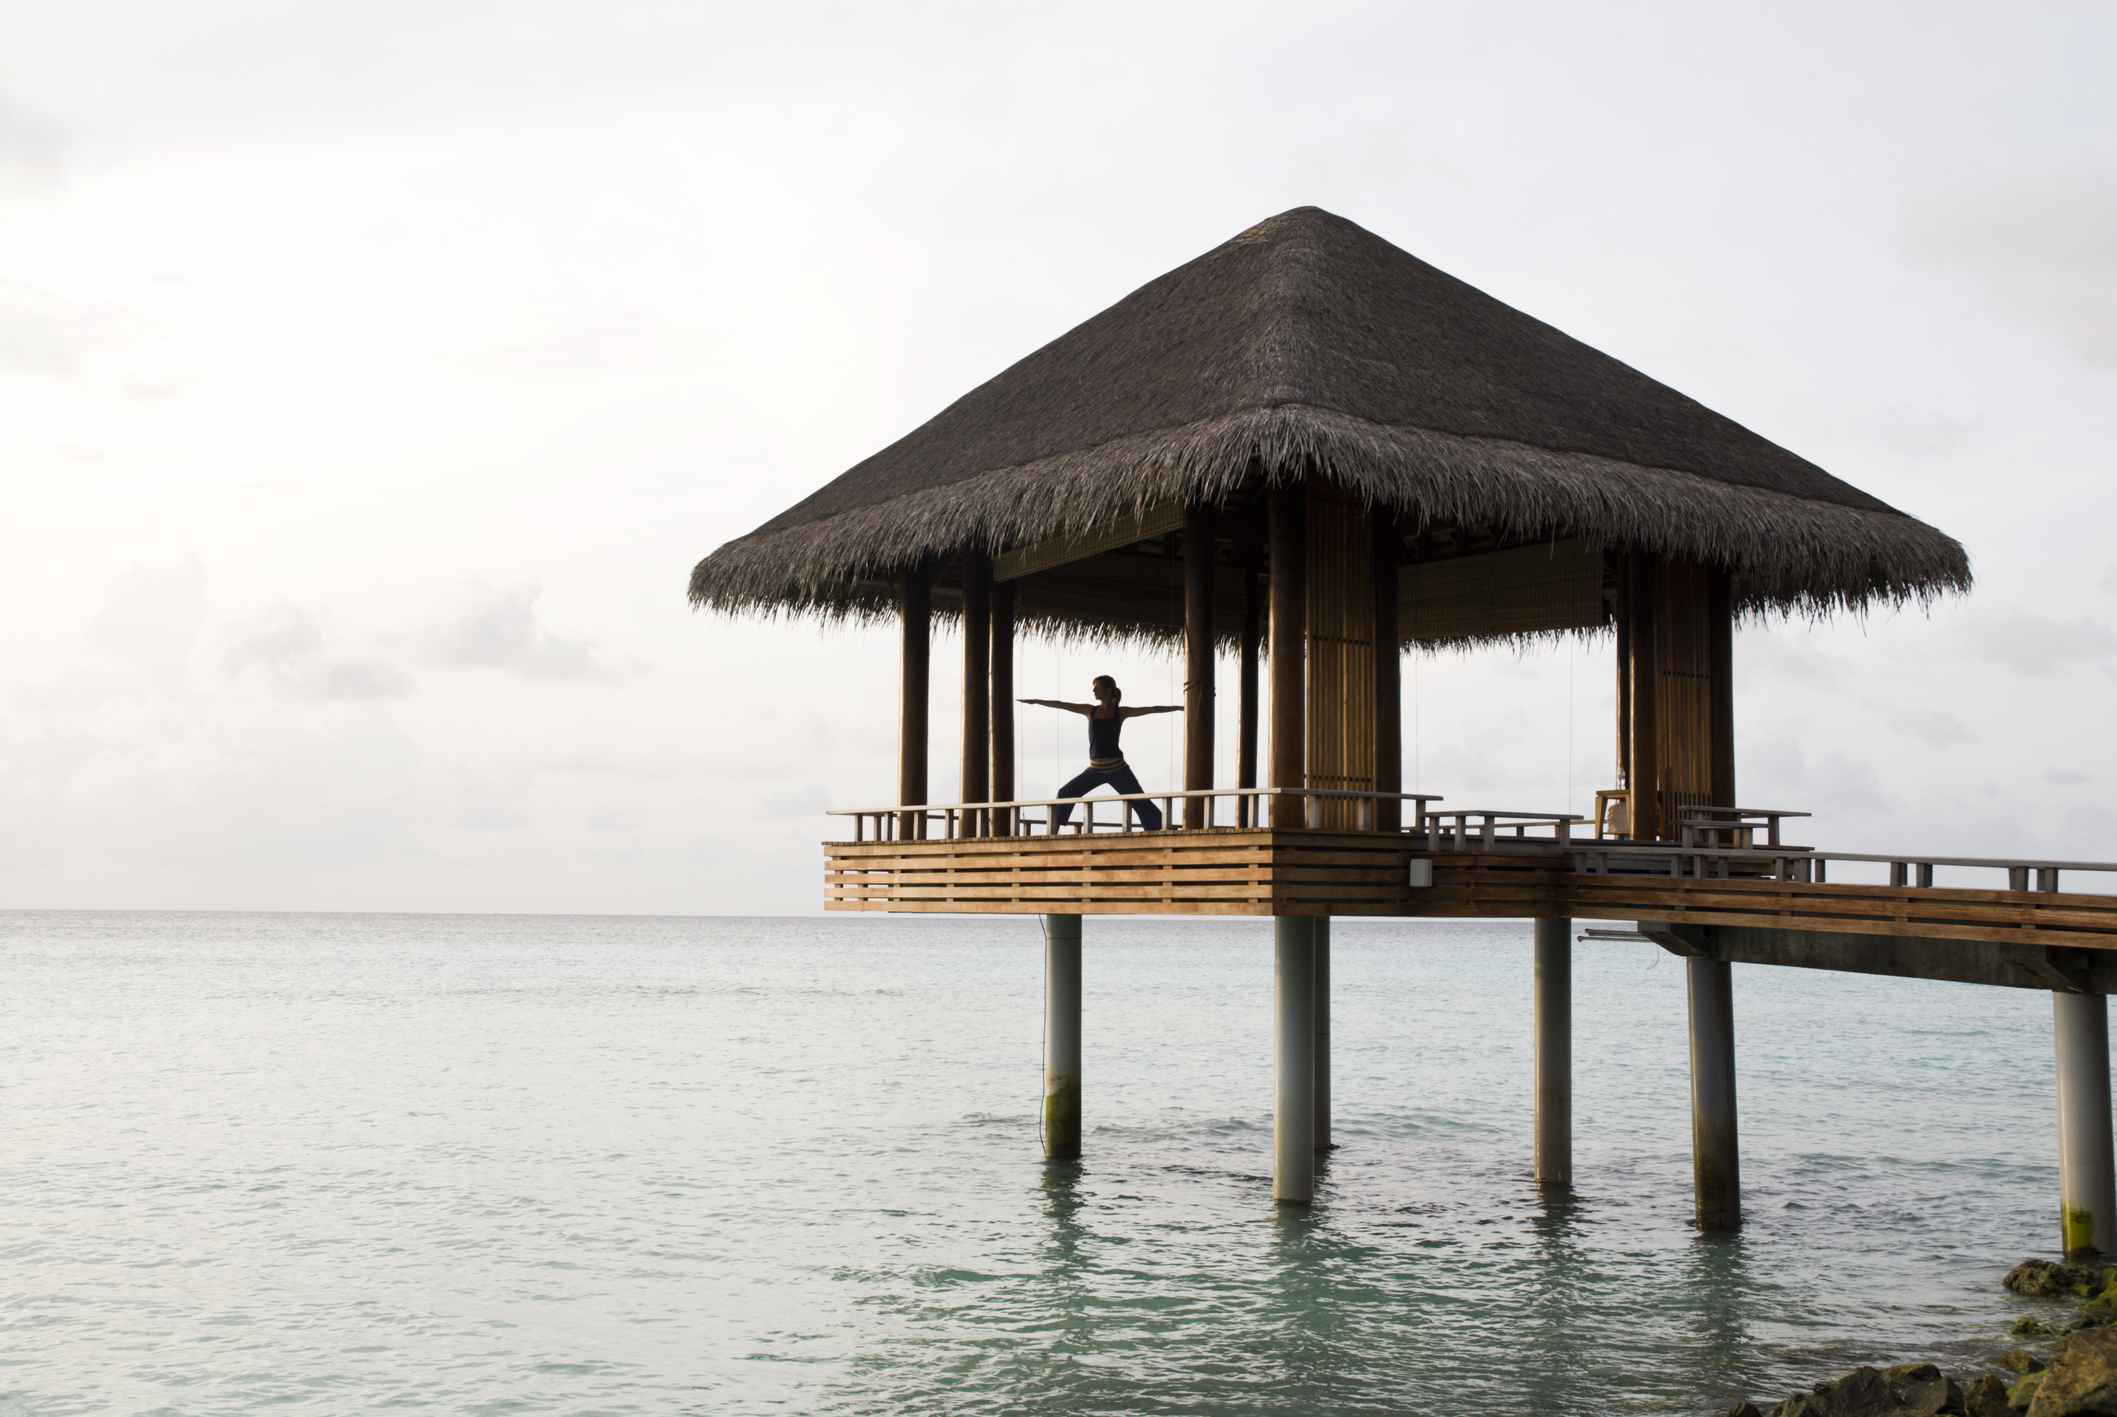 A woman practicing yoga poses on an open air, over water platform at a luxury resort in the Maldives.